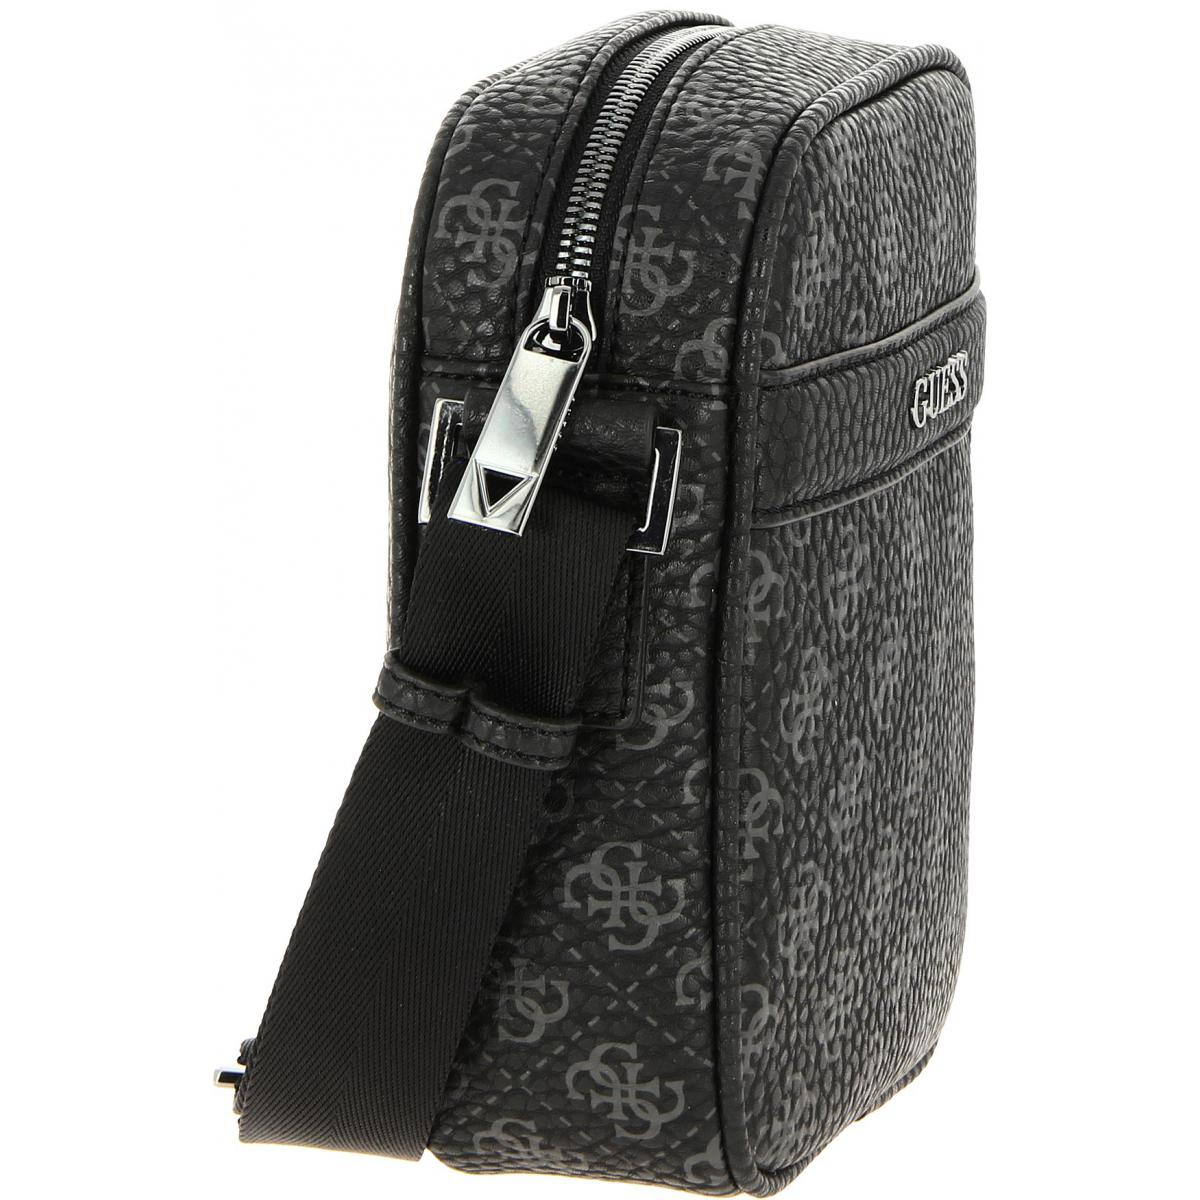 Pochette & Sacoche homme Guess Maroquinerie